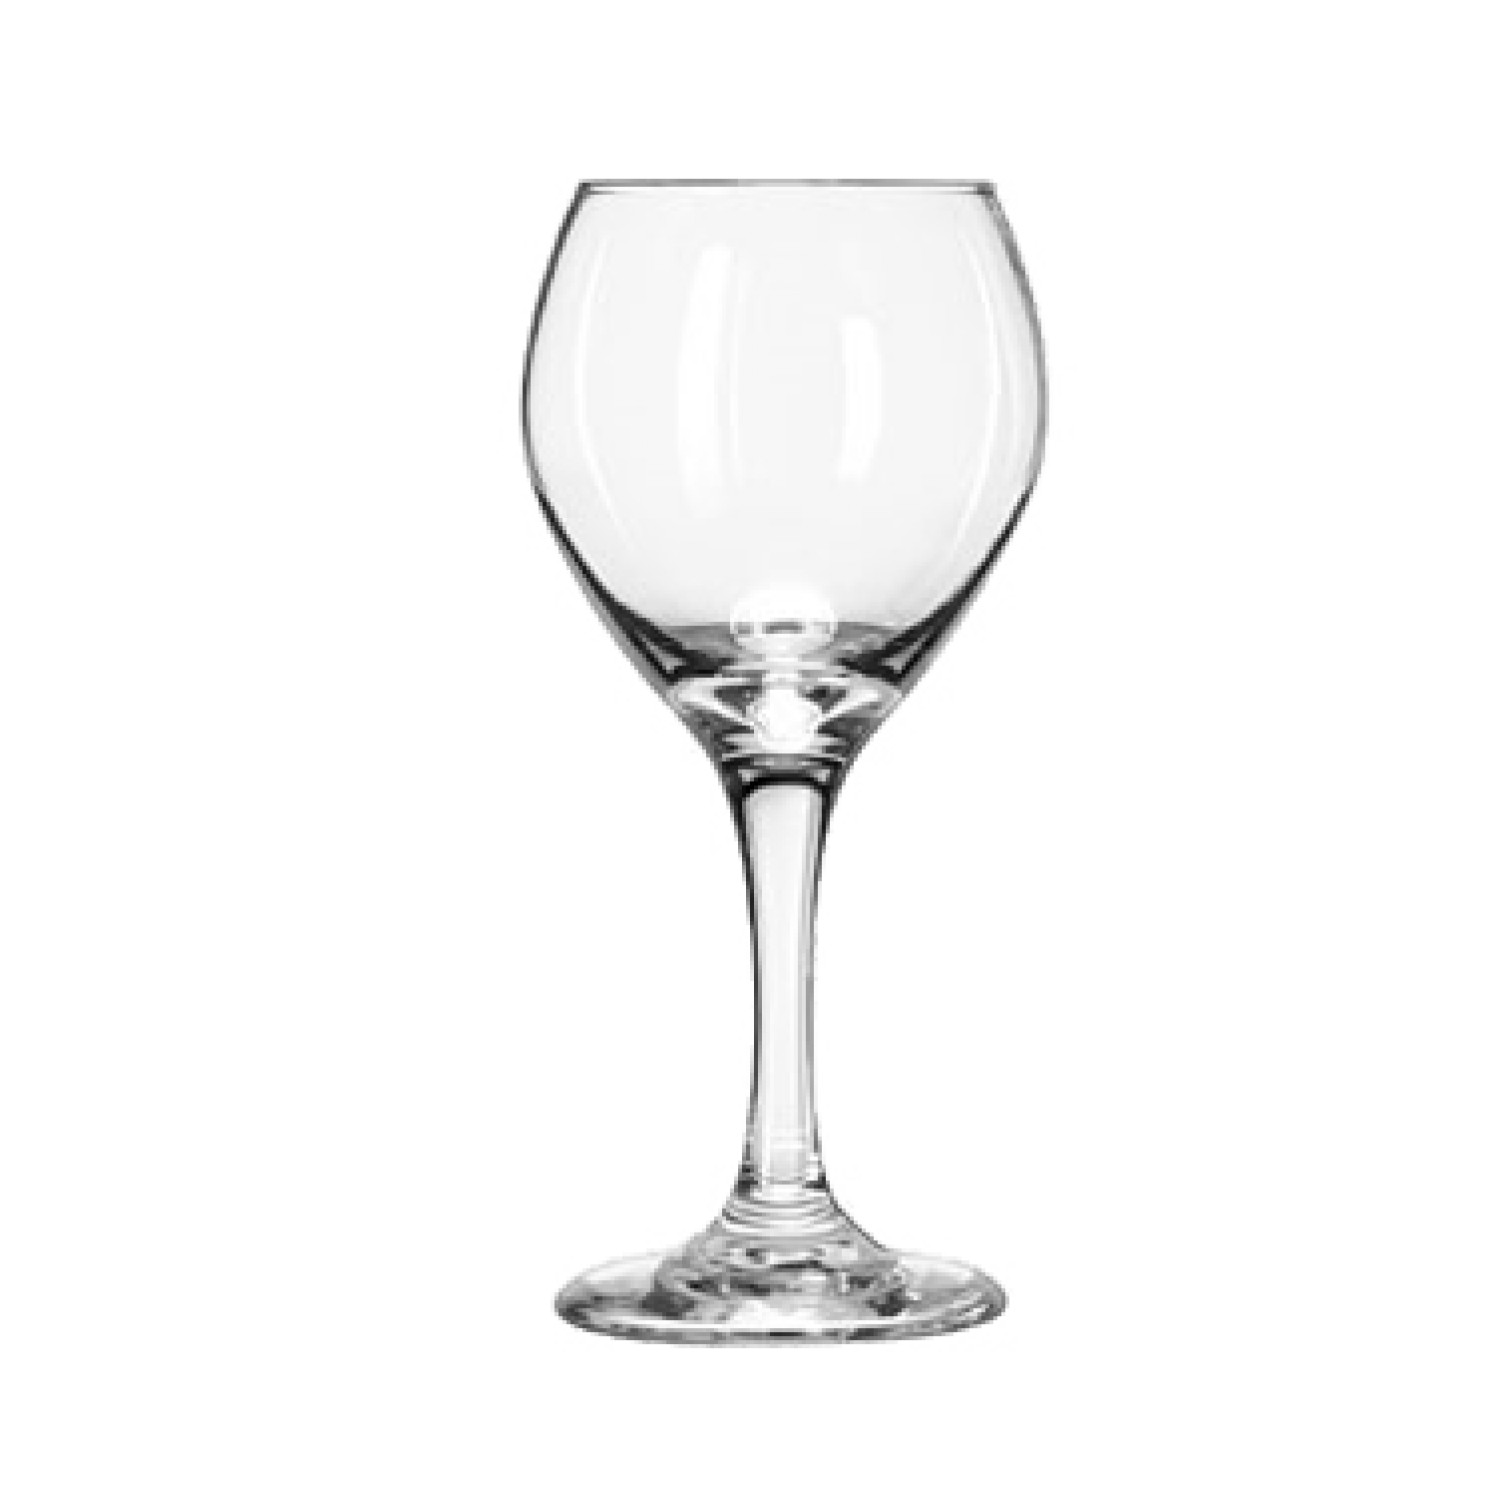 Libbey 3056 Perception Red Wine Glass 10 oz. - 2 doz